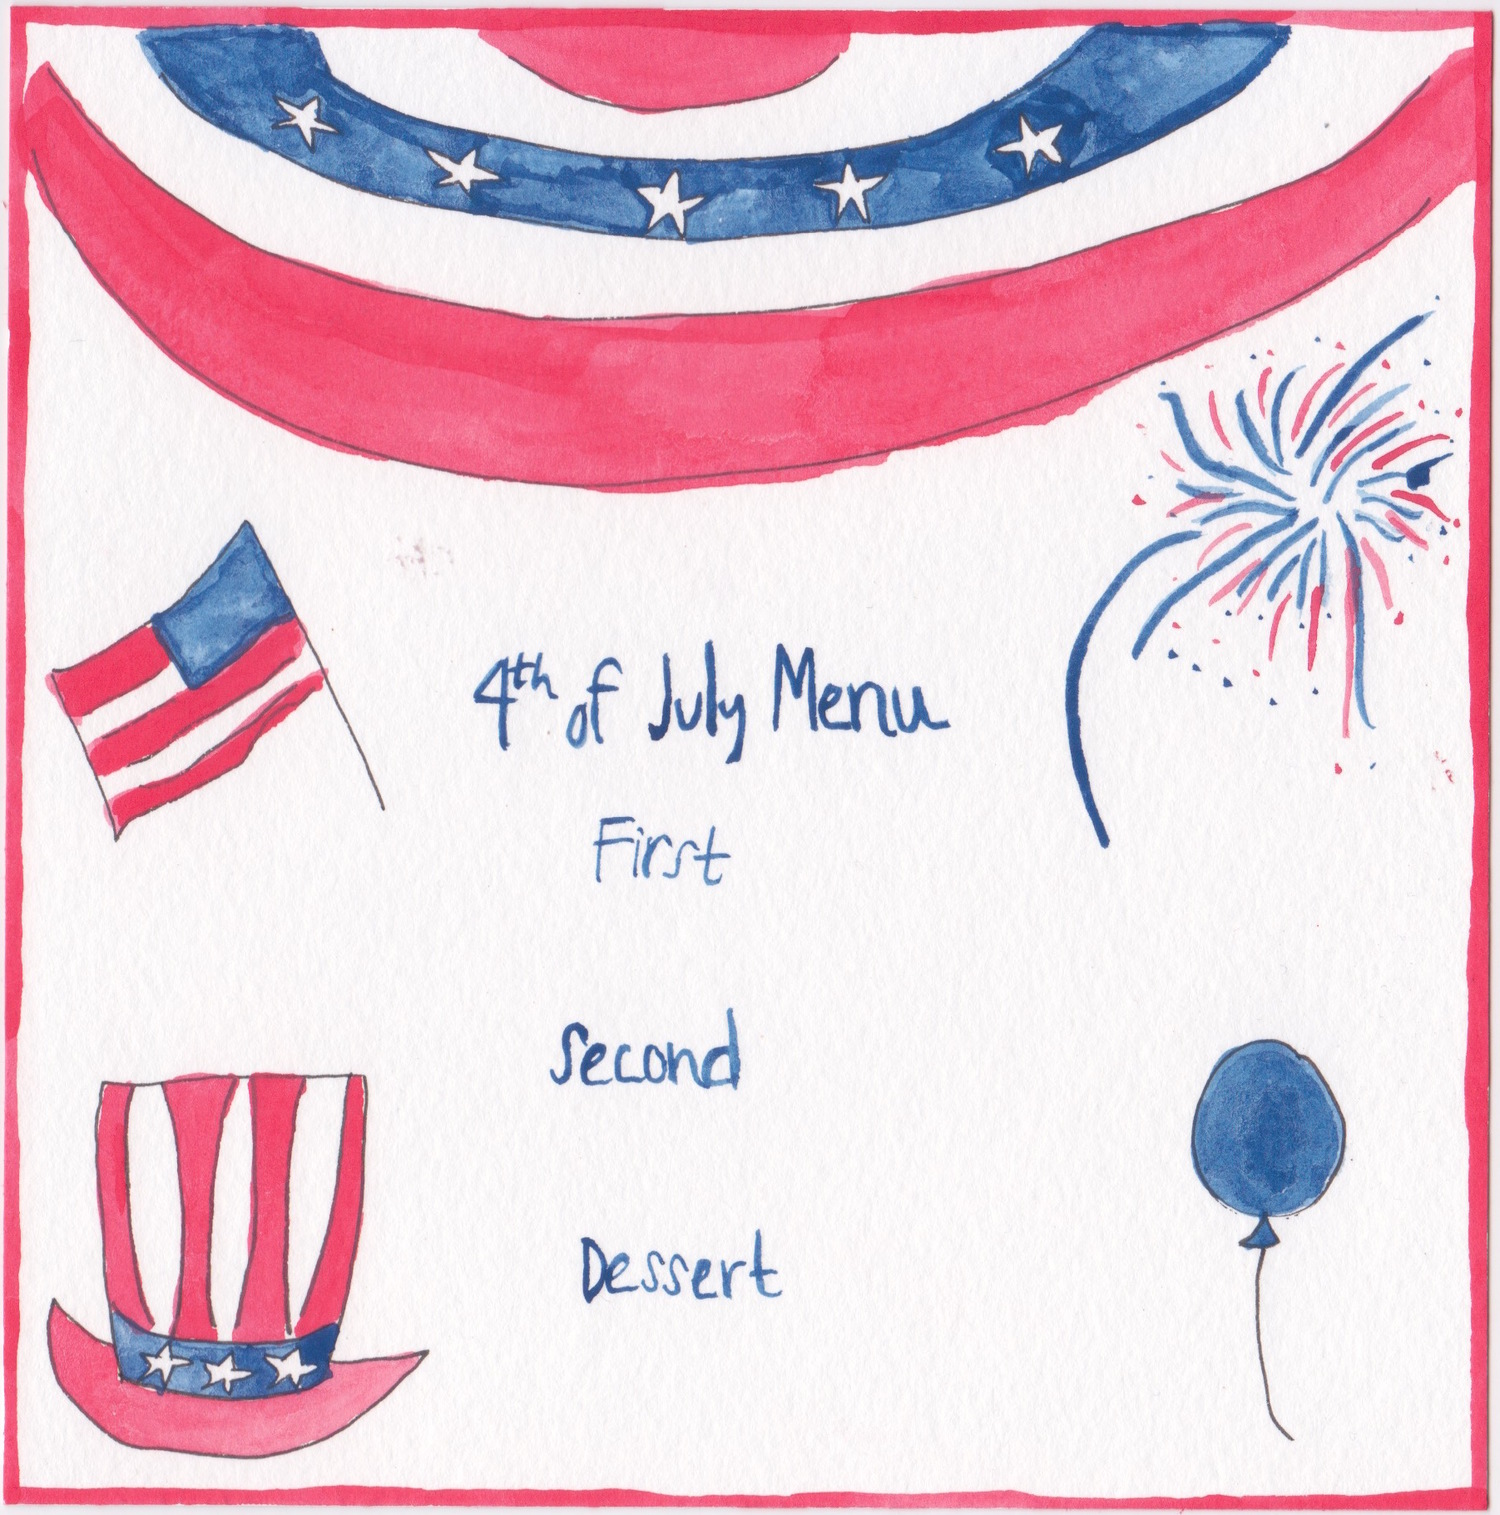 4th of July Menu Template, painted by Chefanie